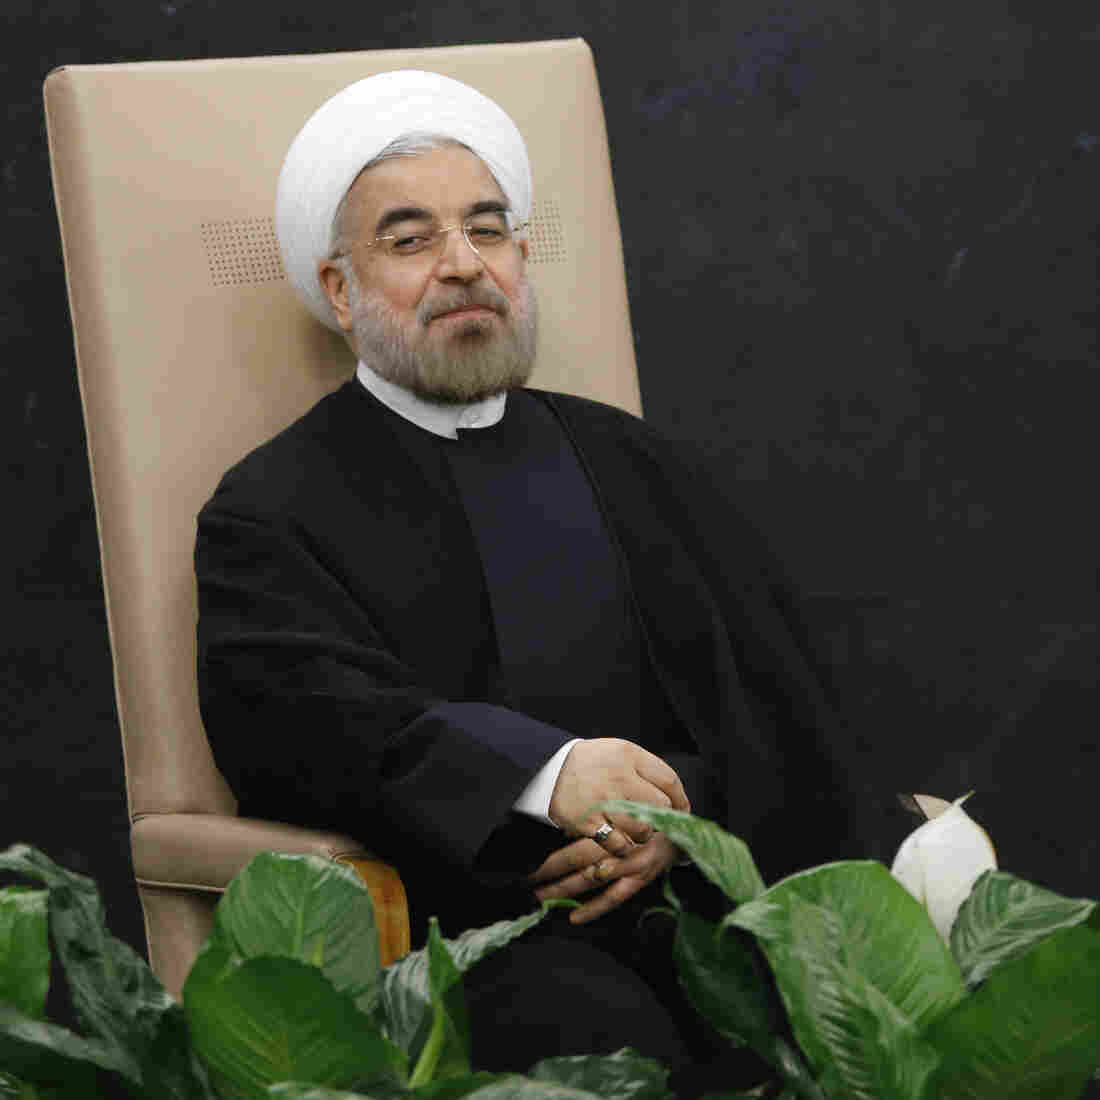 Iranian President Hassan Rouhani at the U.N. on Tuesday.